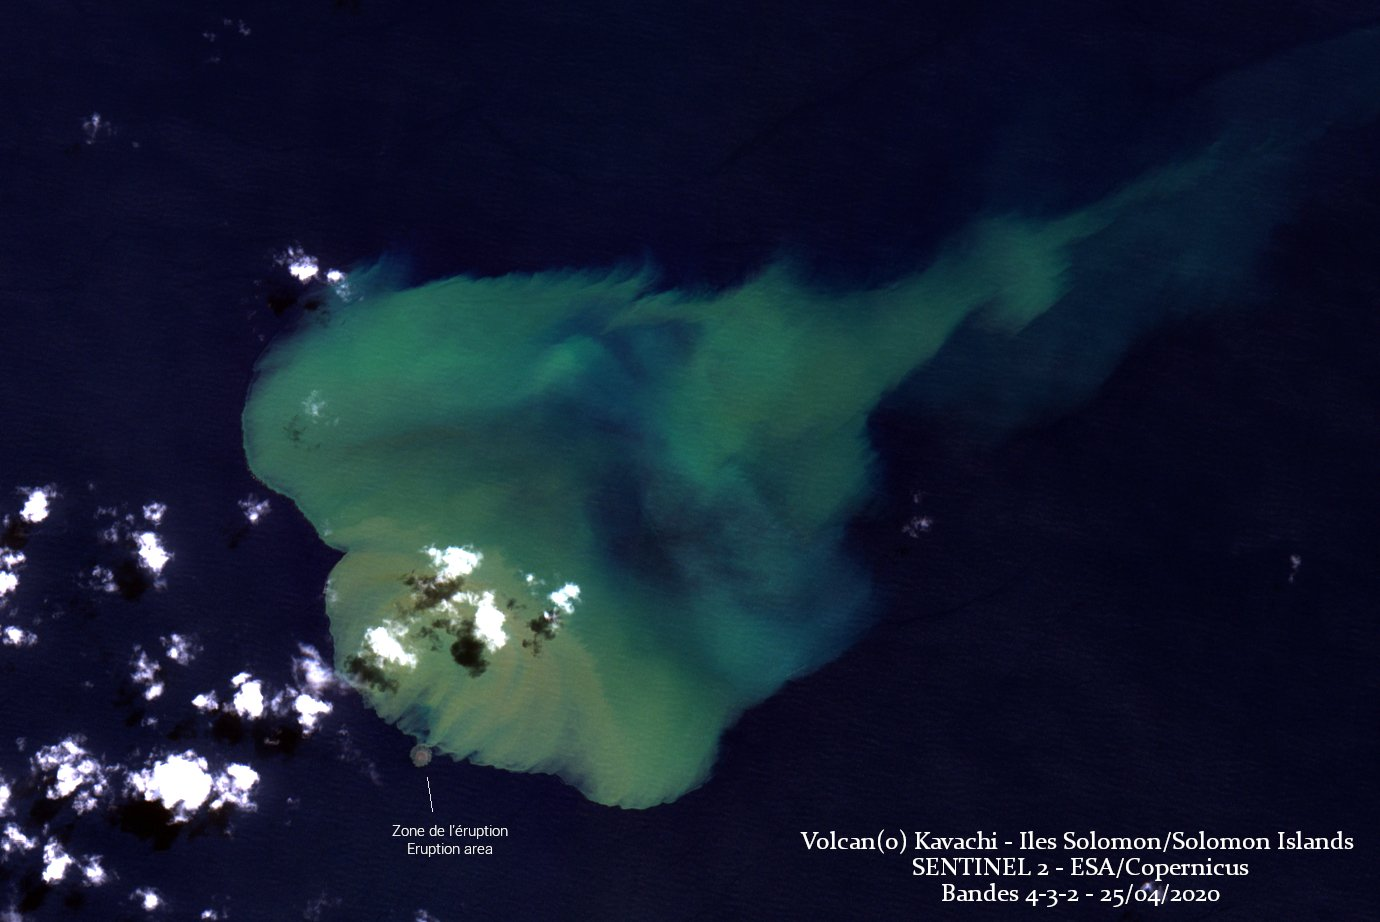 Discolored water around the Kavachi volcano (image: @CultureVolcan/twitter)